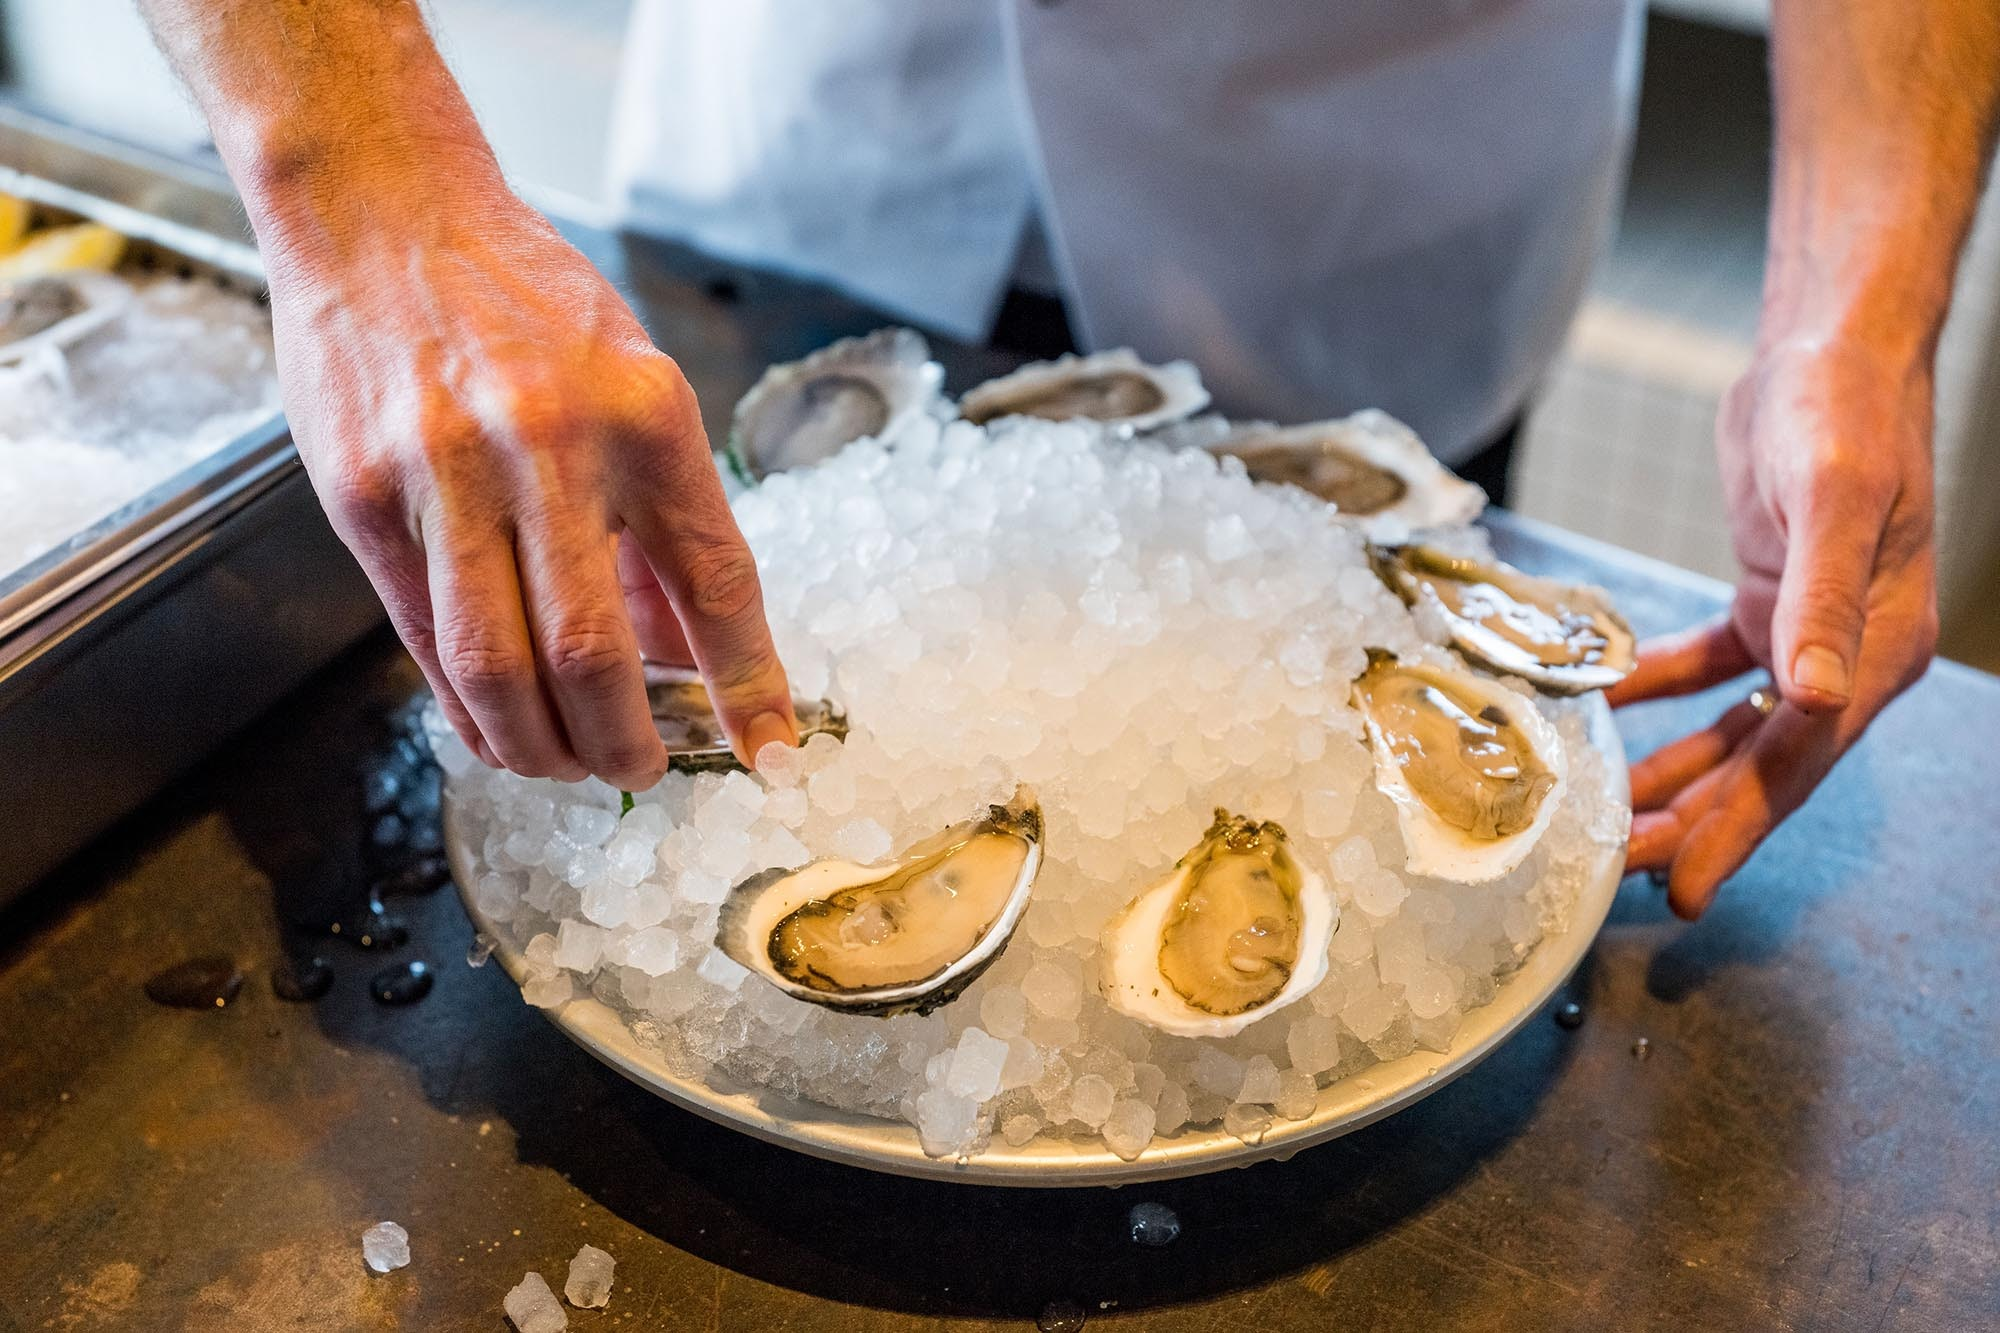 Many people wouldn't dream of eating an oyster—like these beauties from Automatic Seafood—out of season, but don't realize that fish have seasons too.